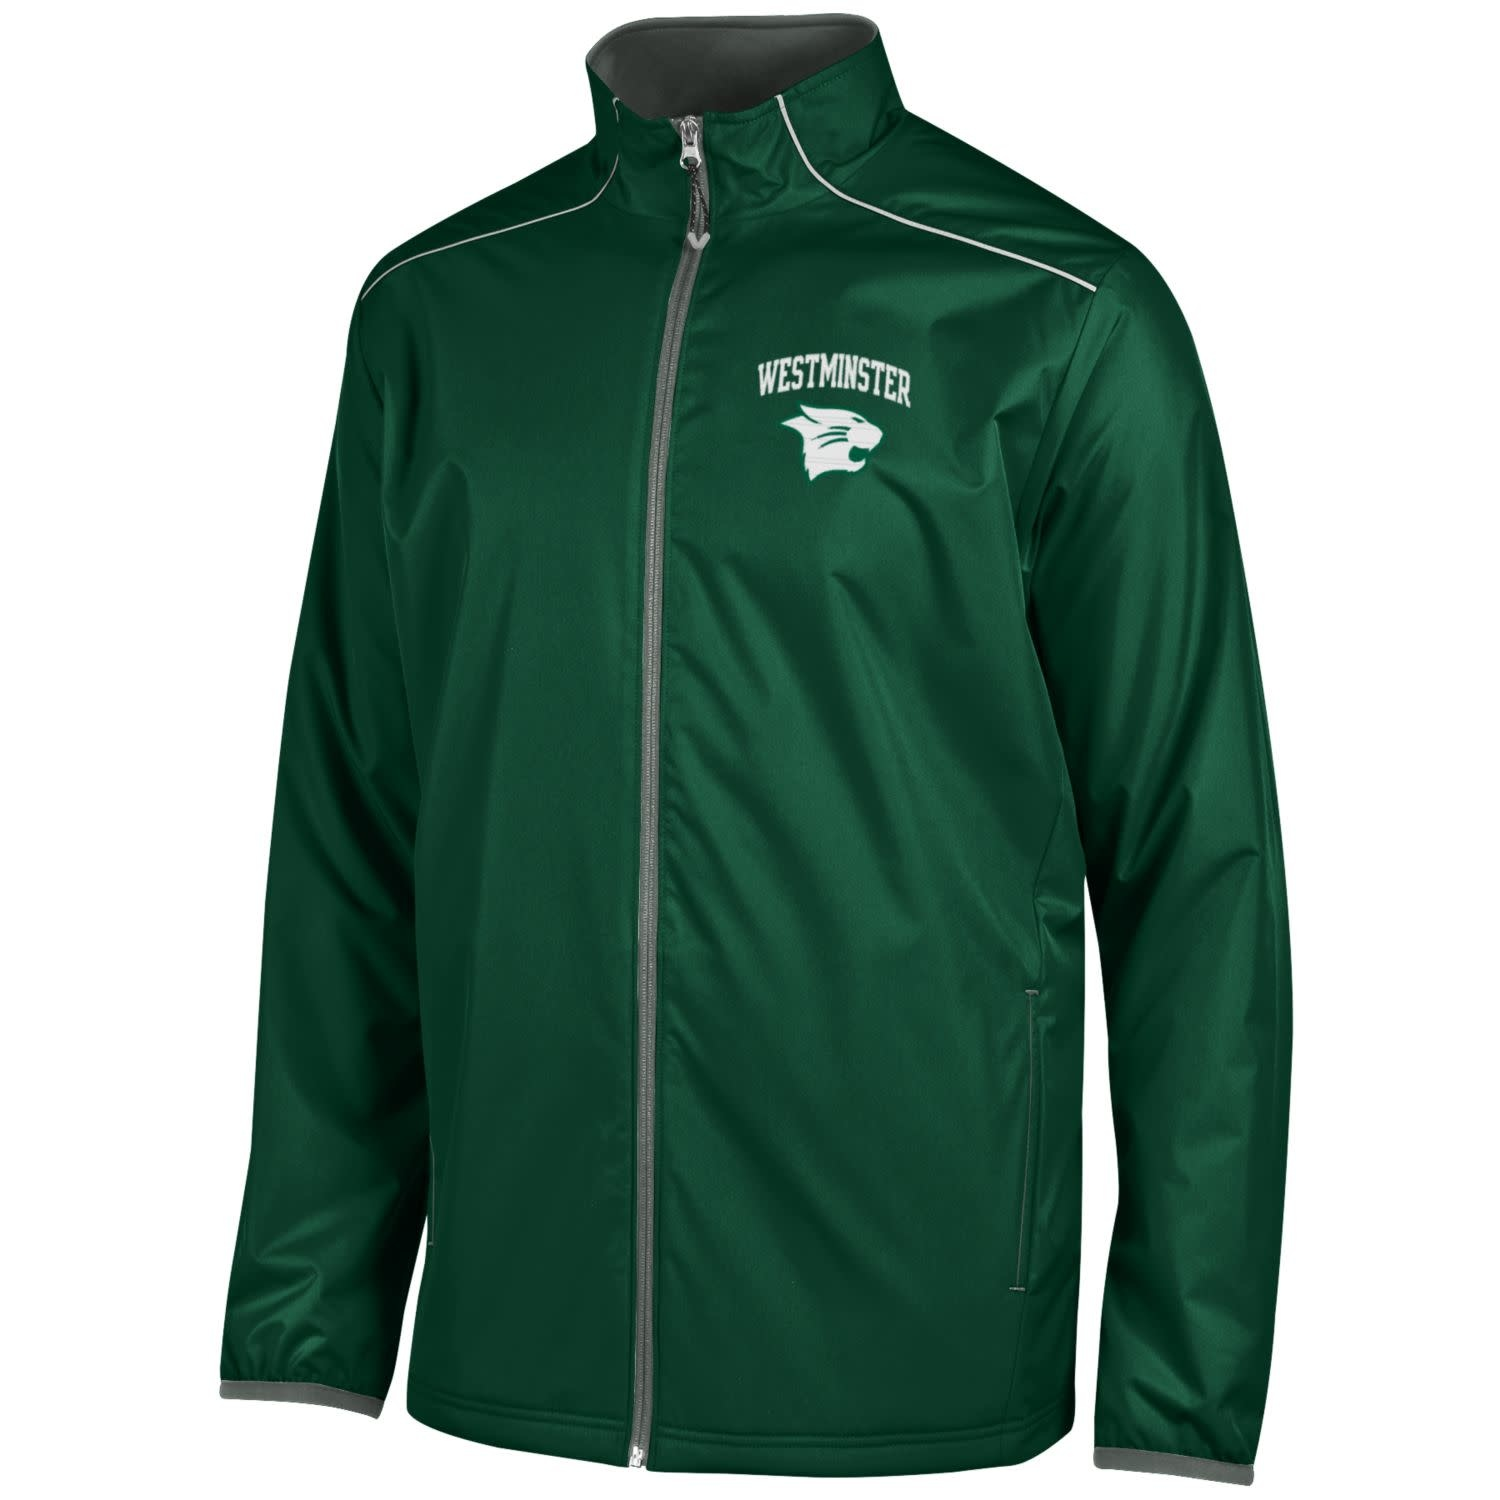 Champion Jacket: Champion Men's Dark Green/Titanium